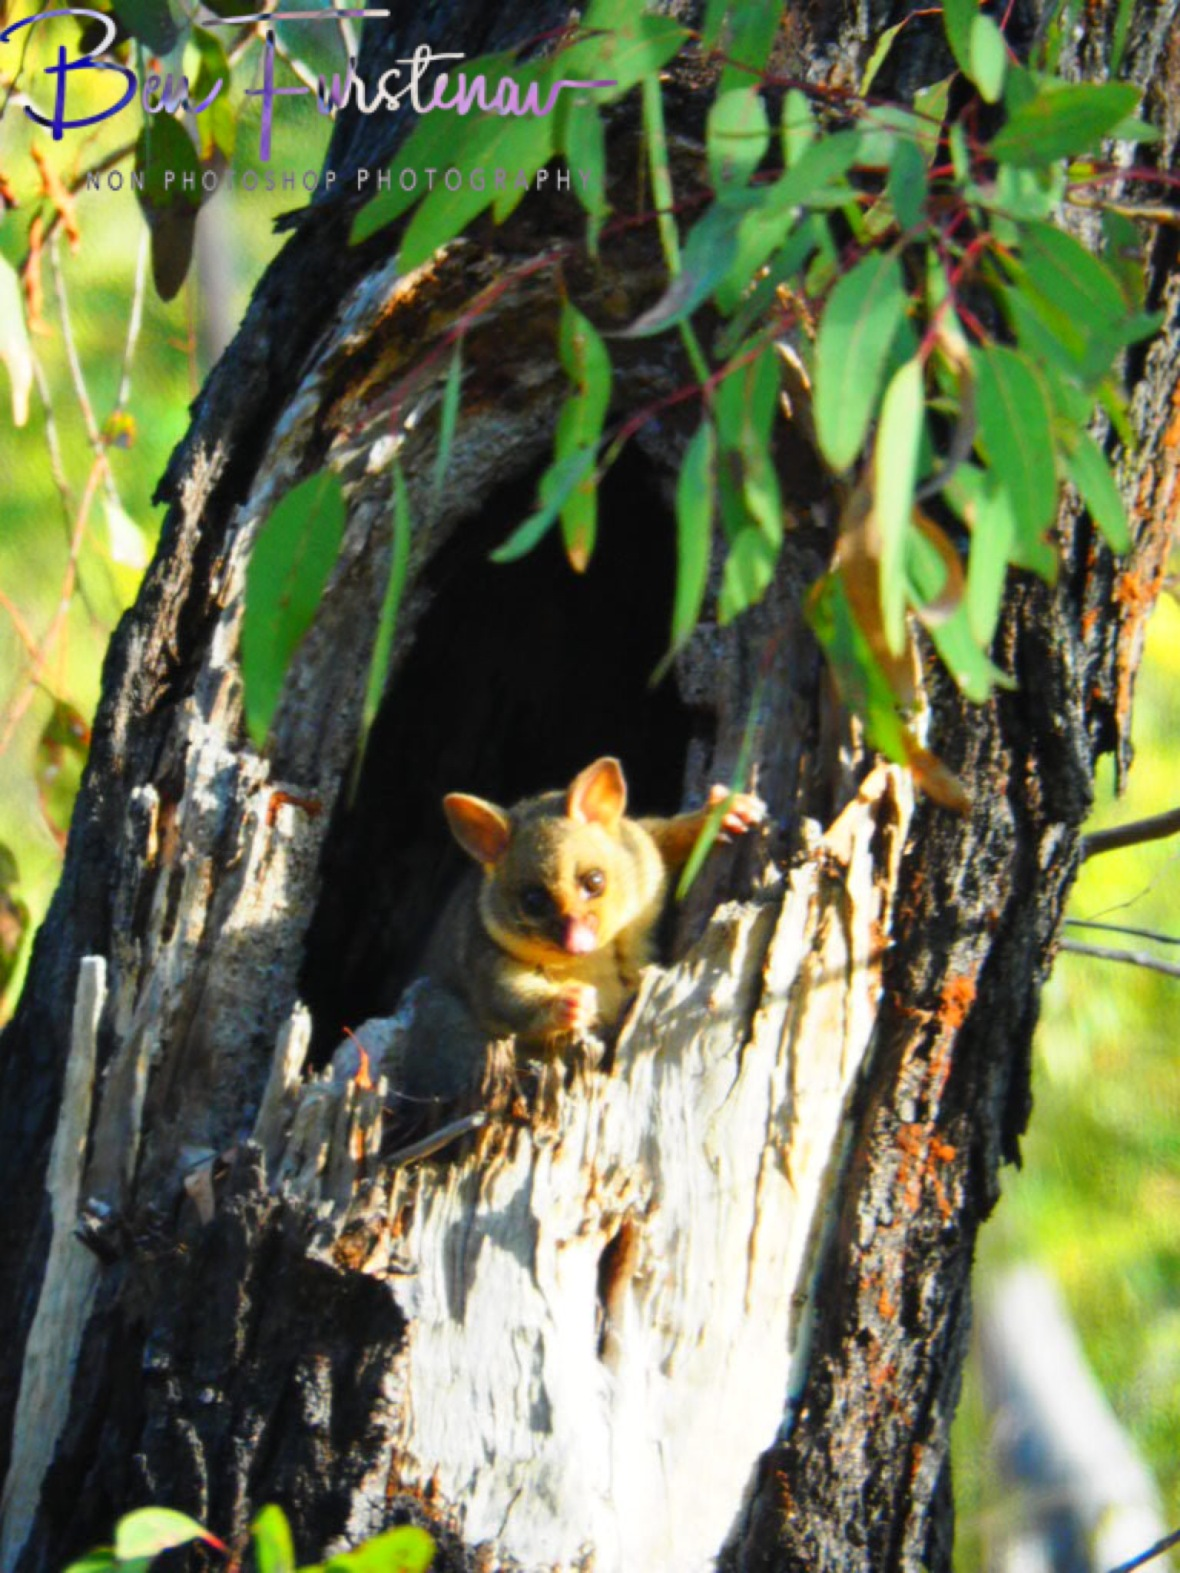 Brushtail Possum at home at Atherton Tablelands, Far North Queensland, Australia